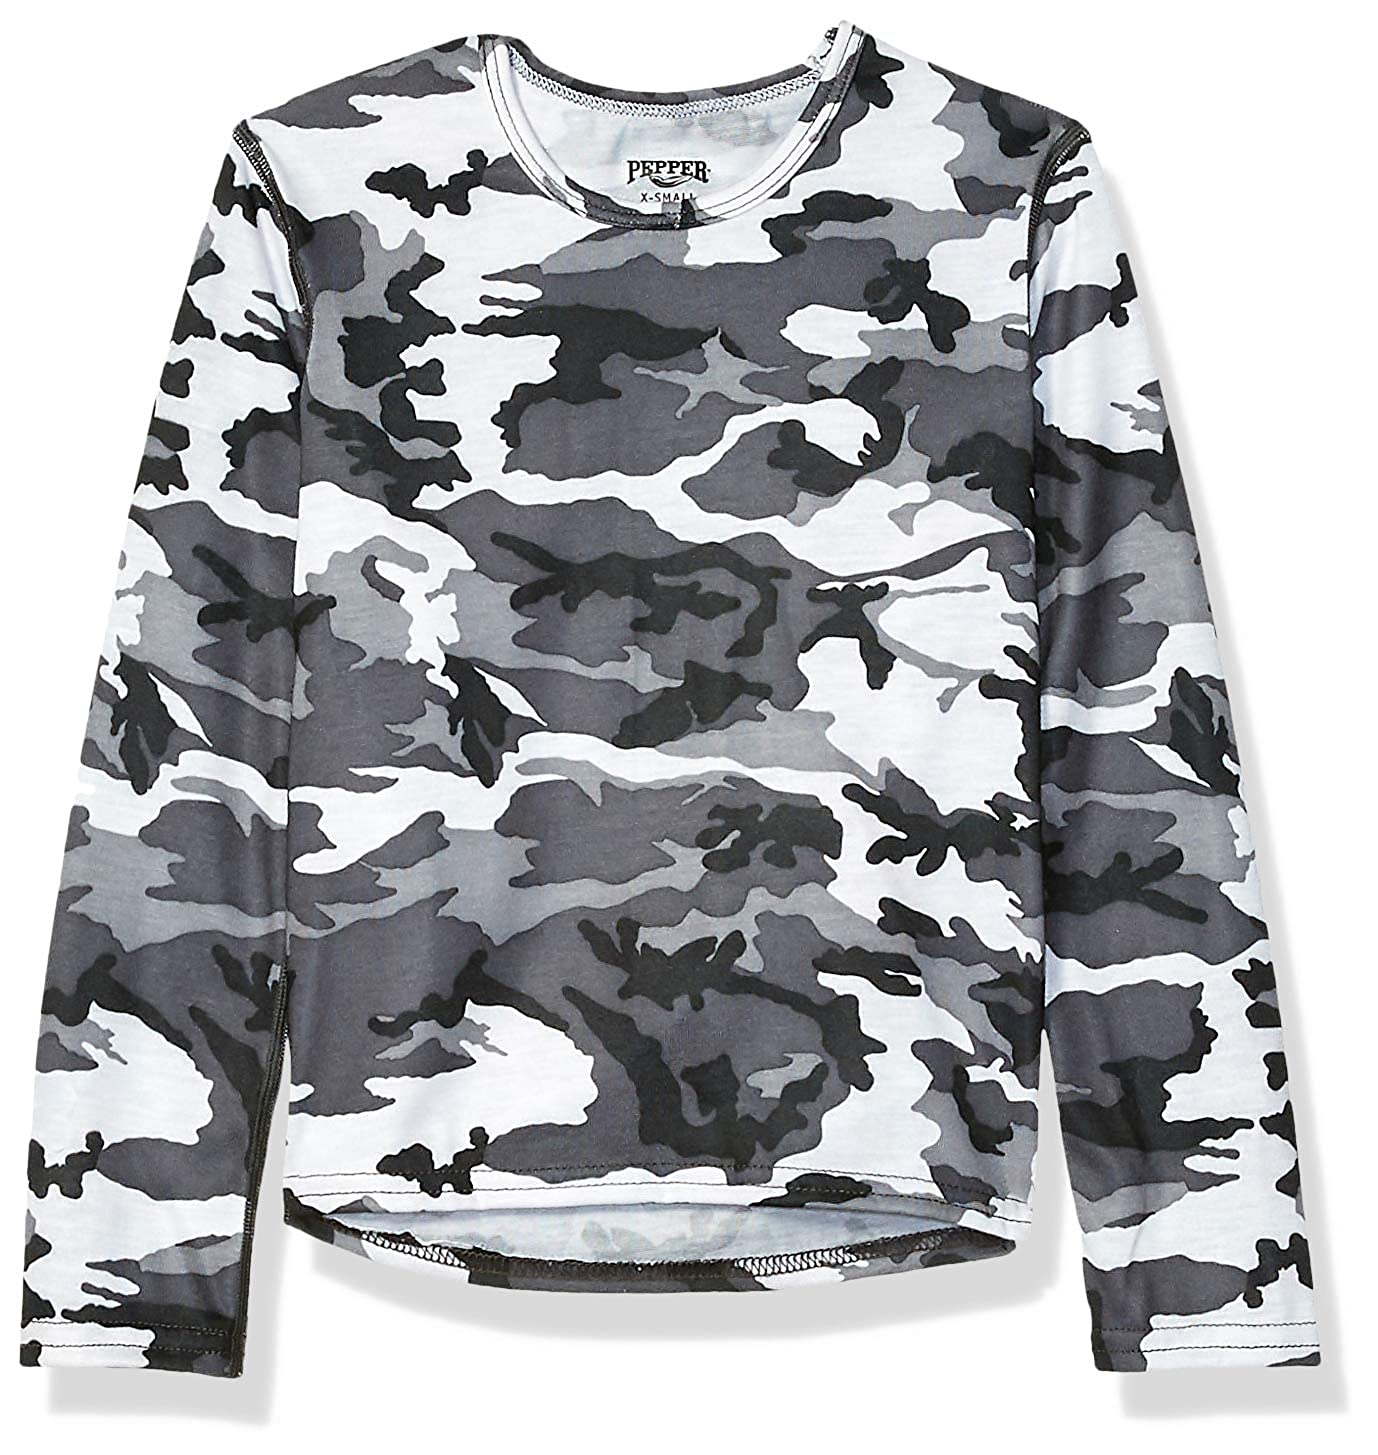 X-Large Hot Chillys Youth Pepper Skins Print Crewneck Storm